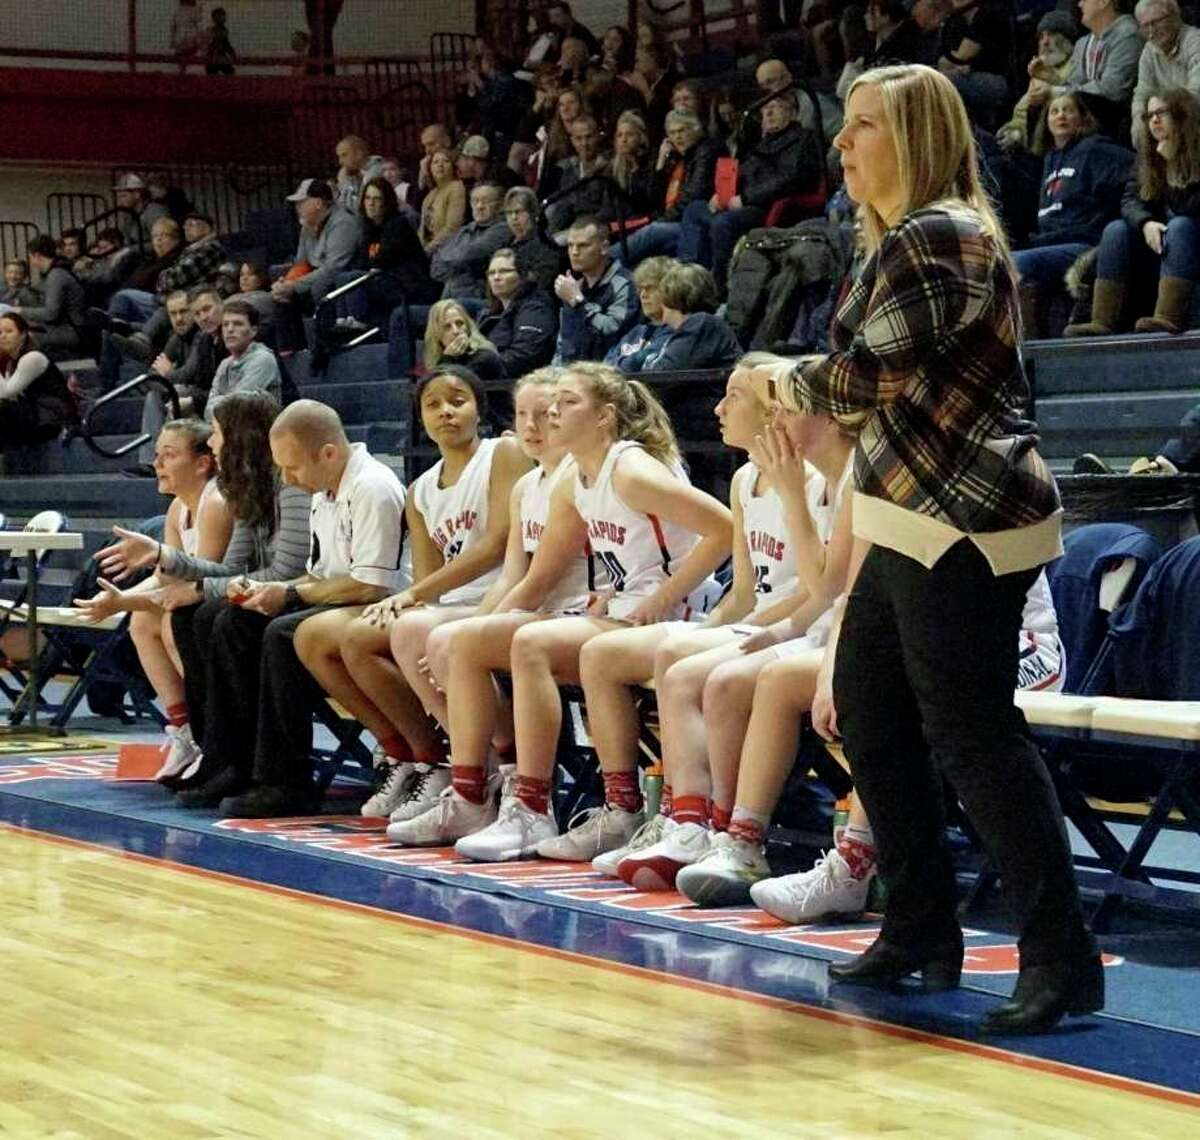 Big Rapids girls hoops coach Jessica Haist and her team are ready to begin another season, and will hold first practices on Monday afternoon. (Pioneer file photo)